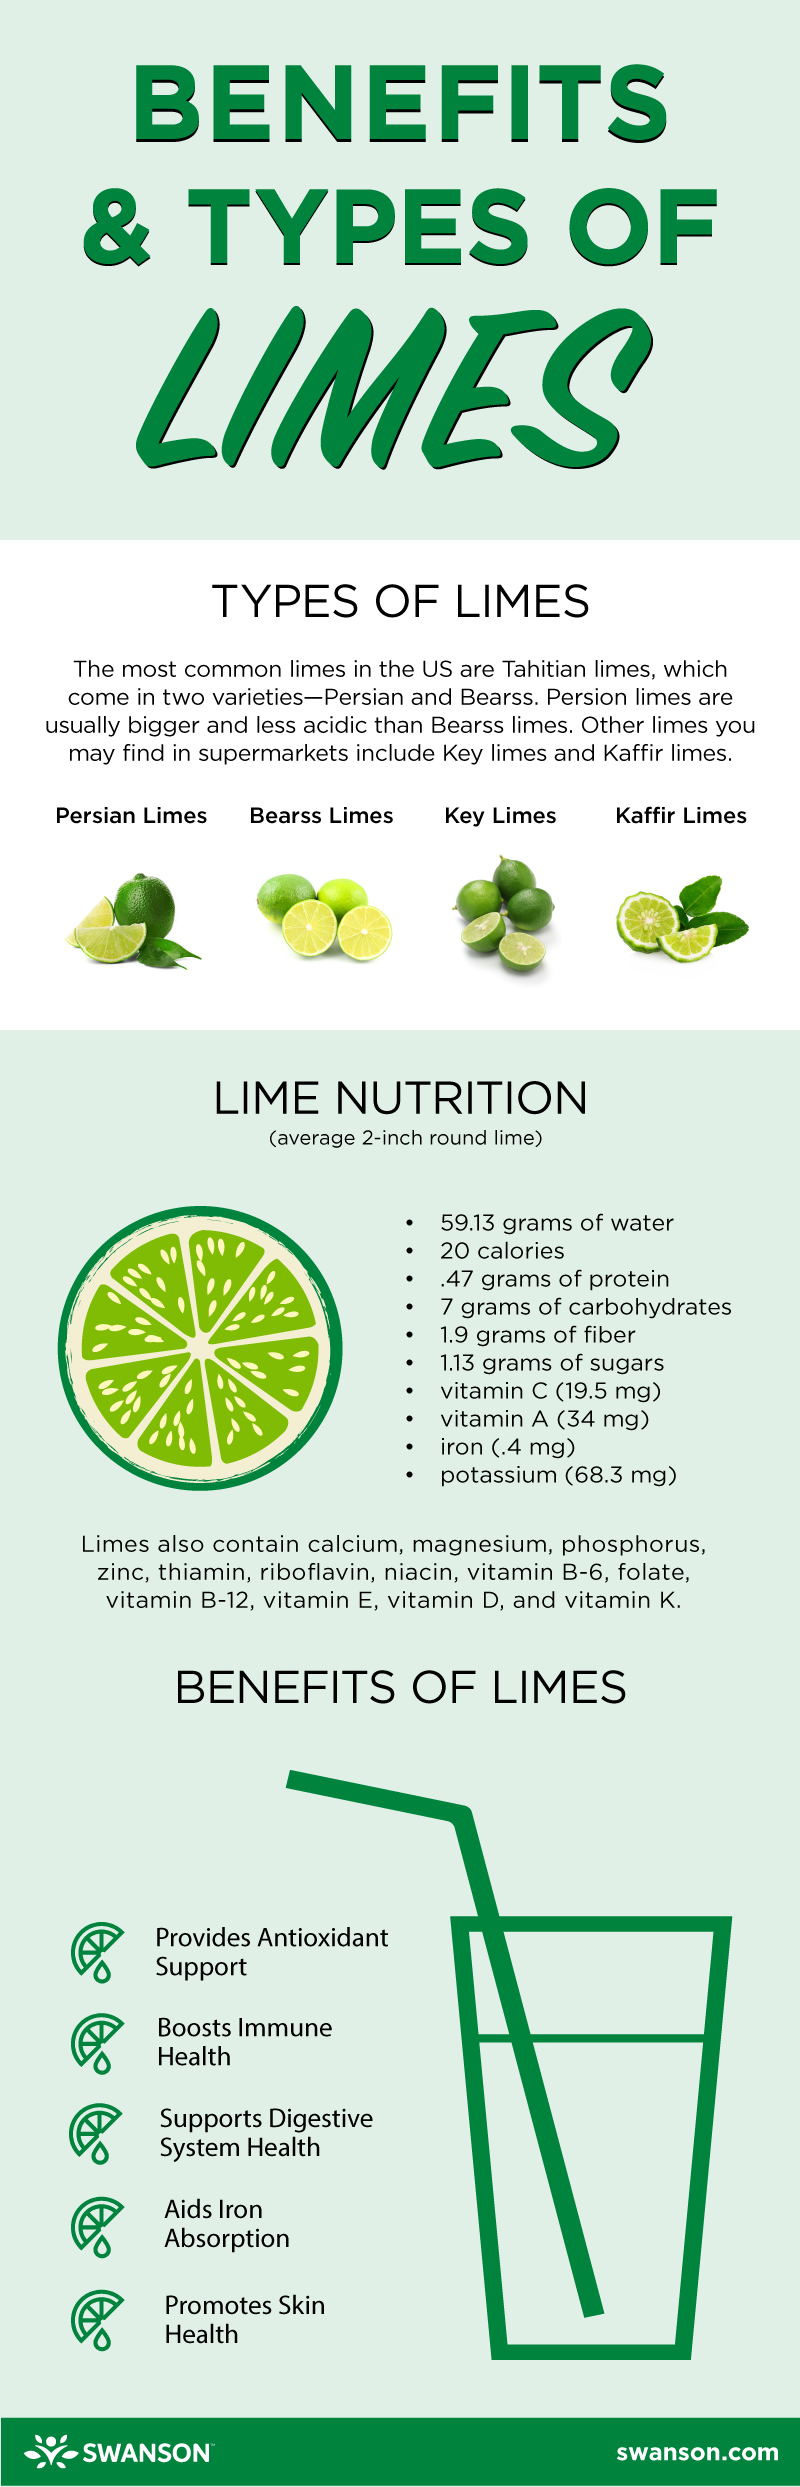 Benefits of Limes Infographic